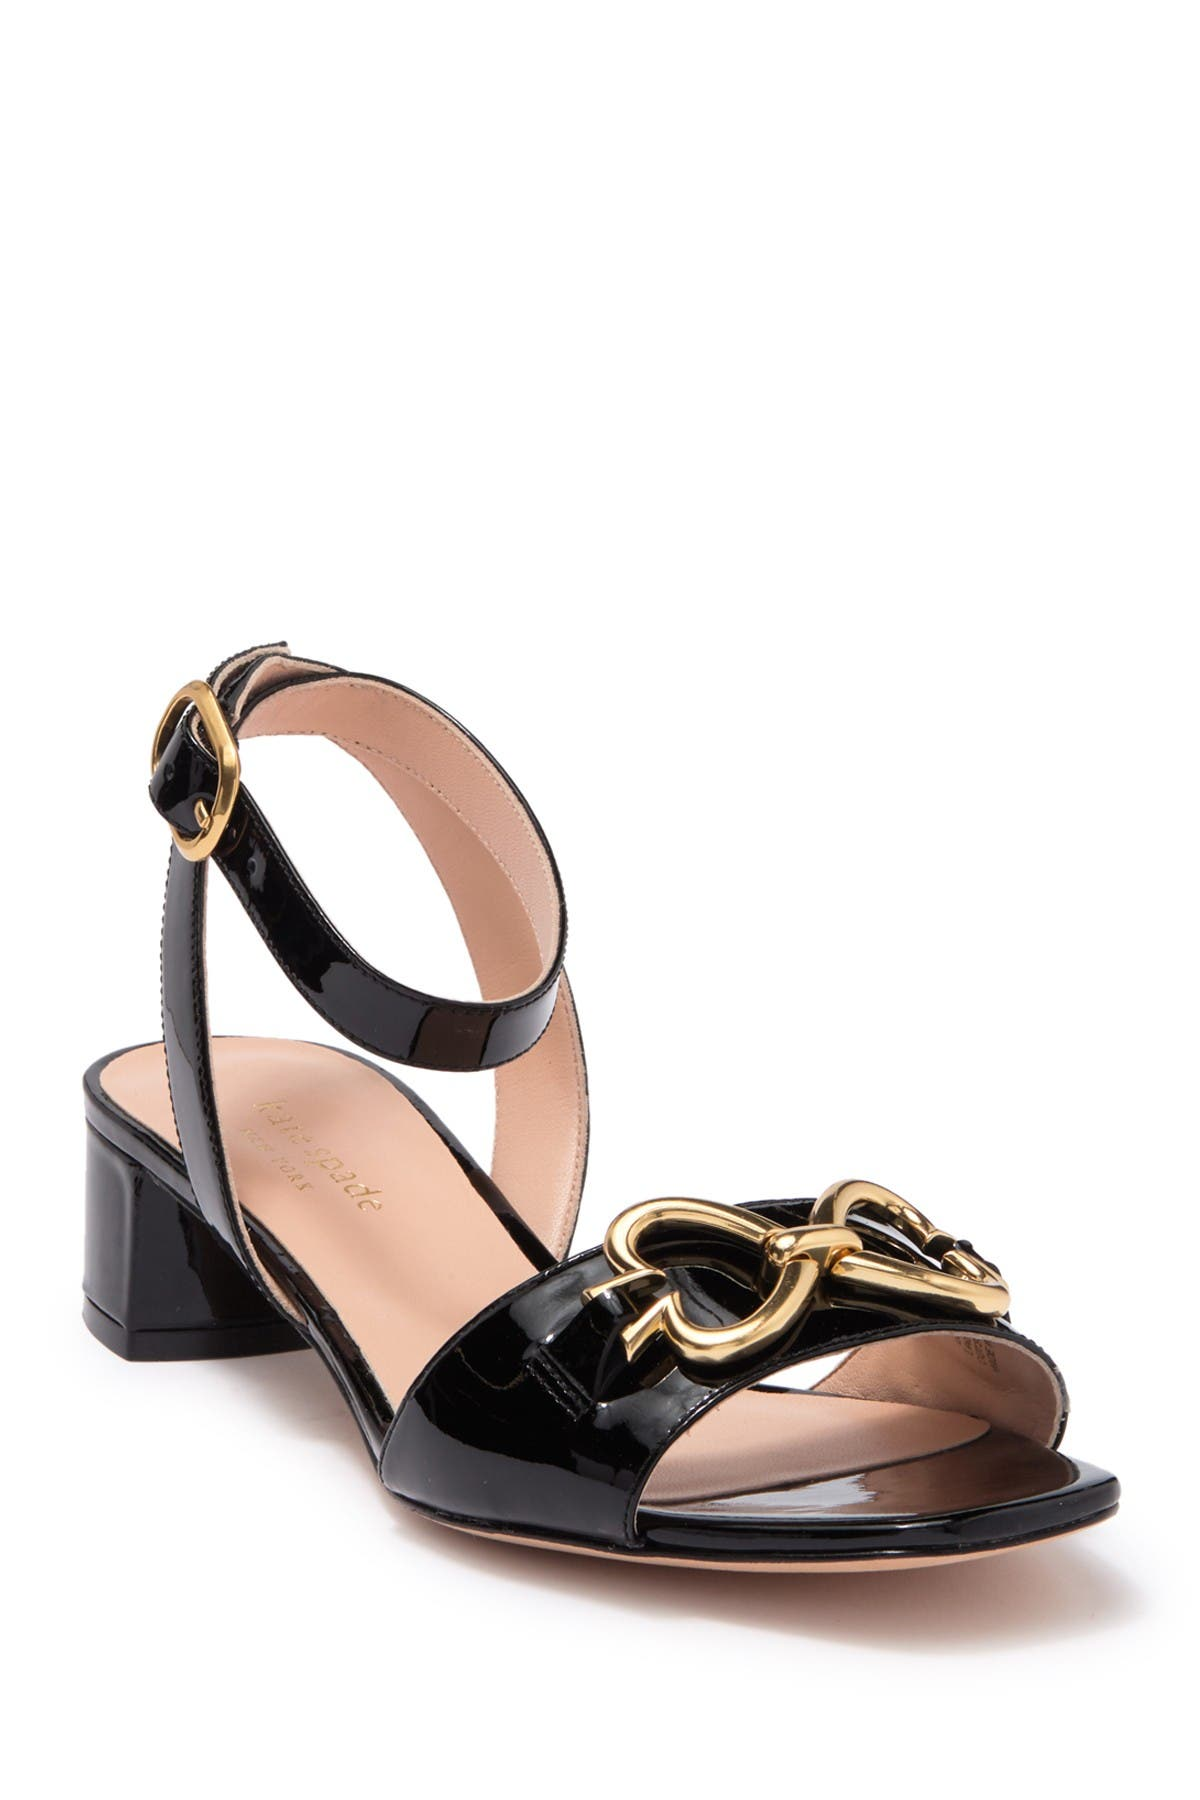 Kate Spade Women's Lagoon Heart Chain Patent Leather Sandals In Black